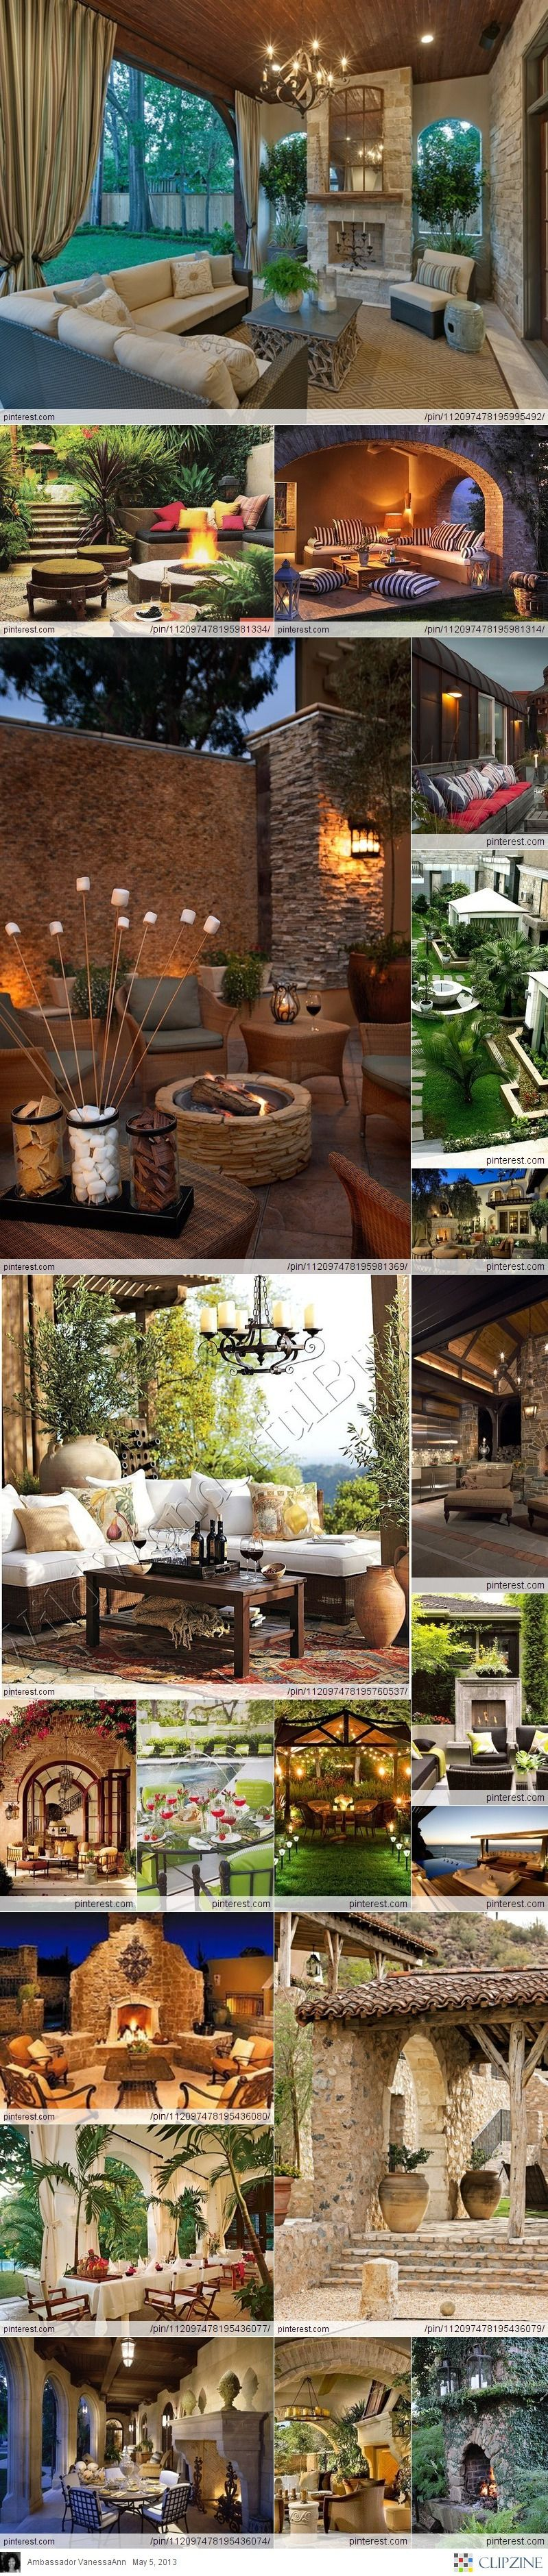 b8d24c0ce3815bb177845700552476a6 Top Result 50 Awesome Cost Of Outdoor Fireplace Picture 2018 Zat3